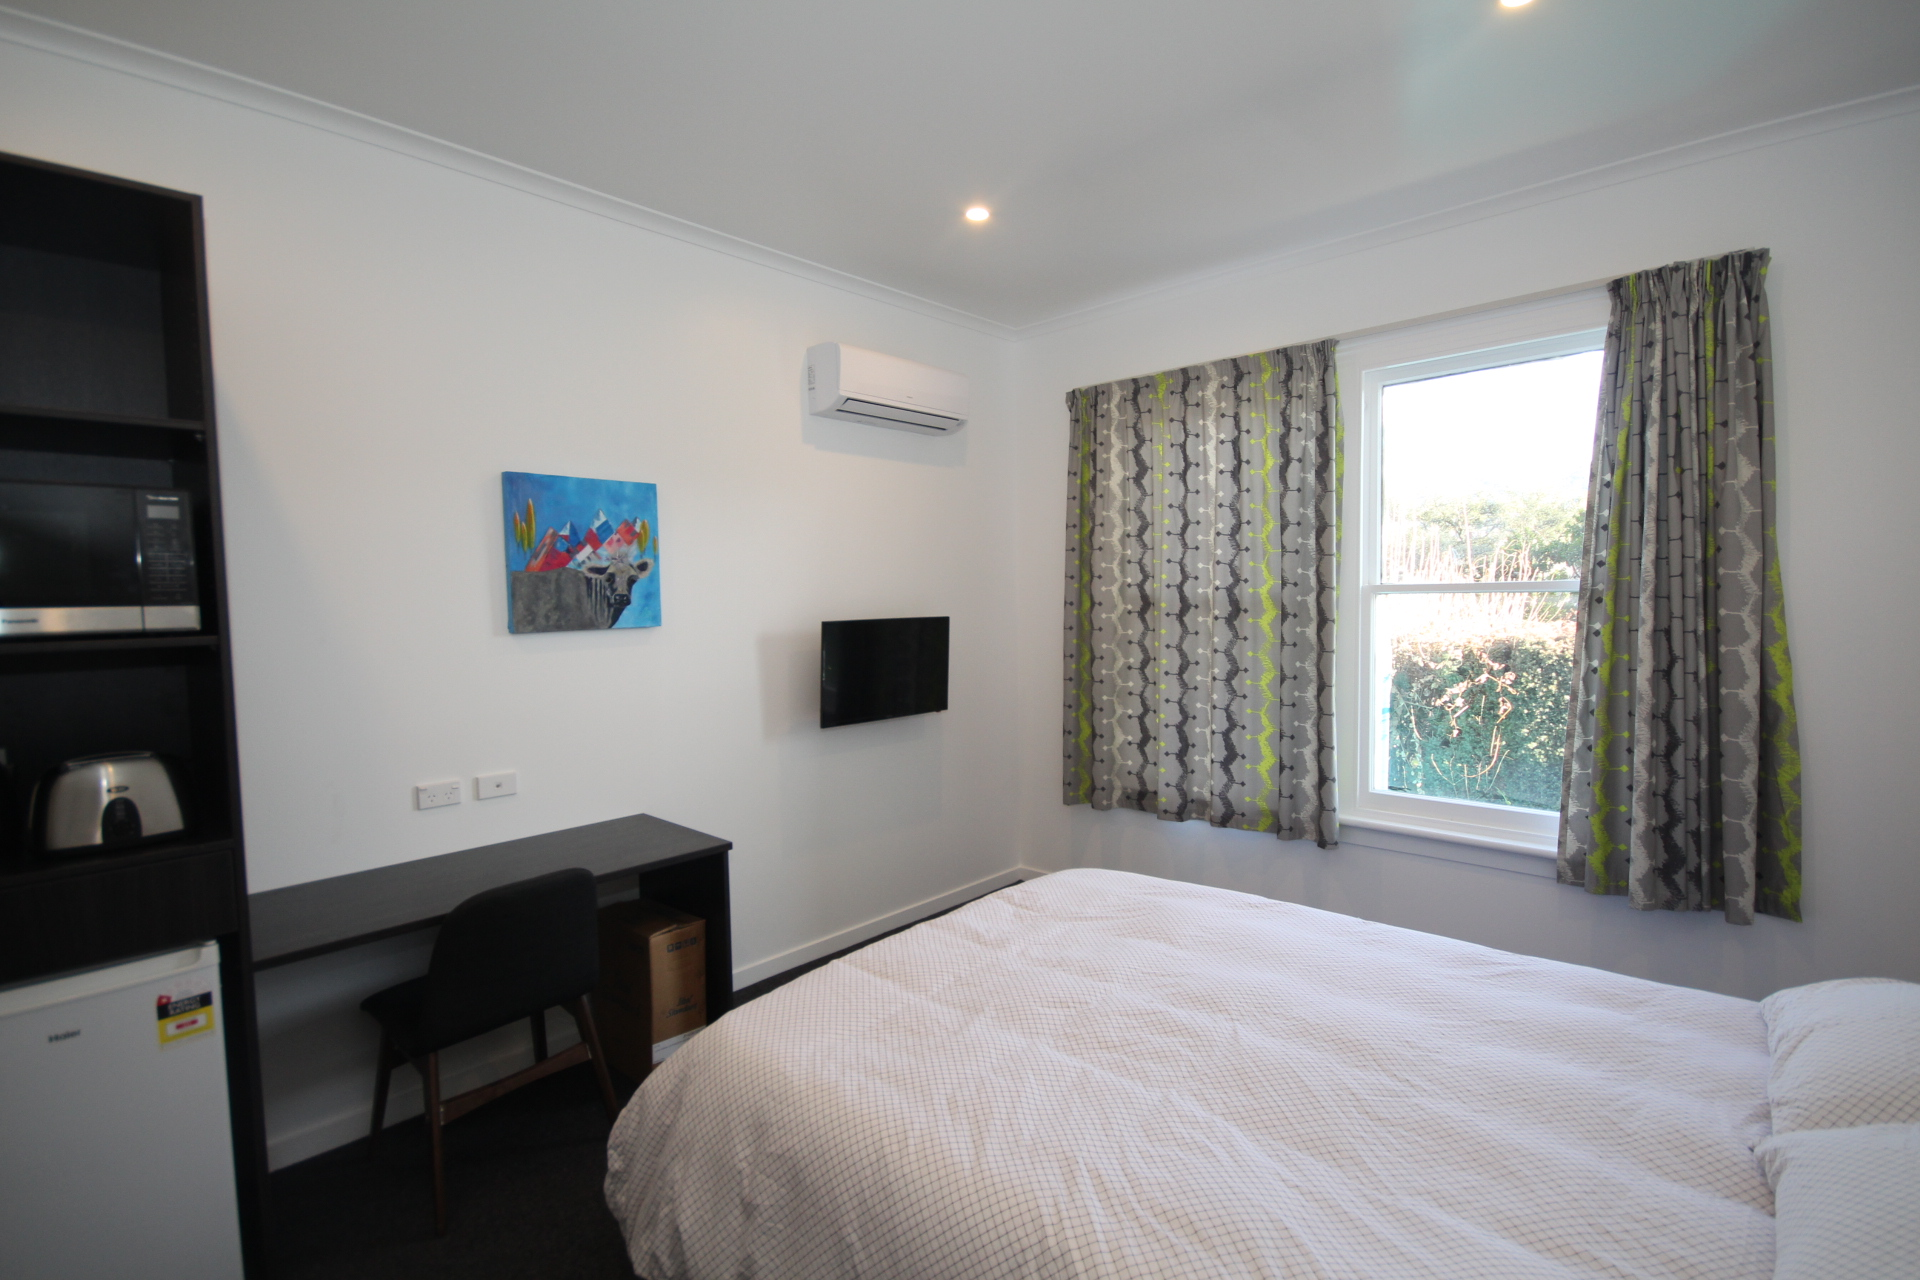 One of the Executive Studio bedrooms